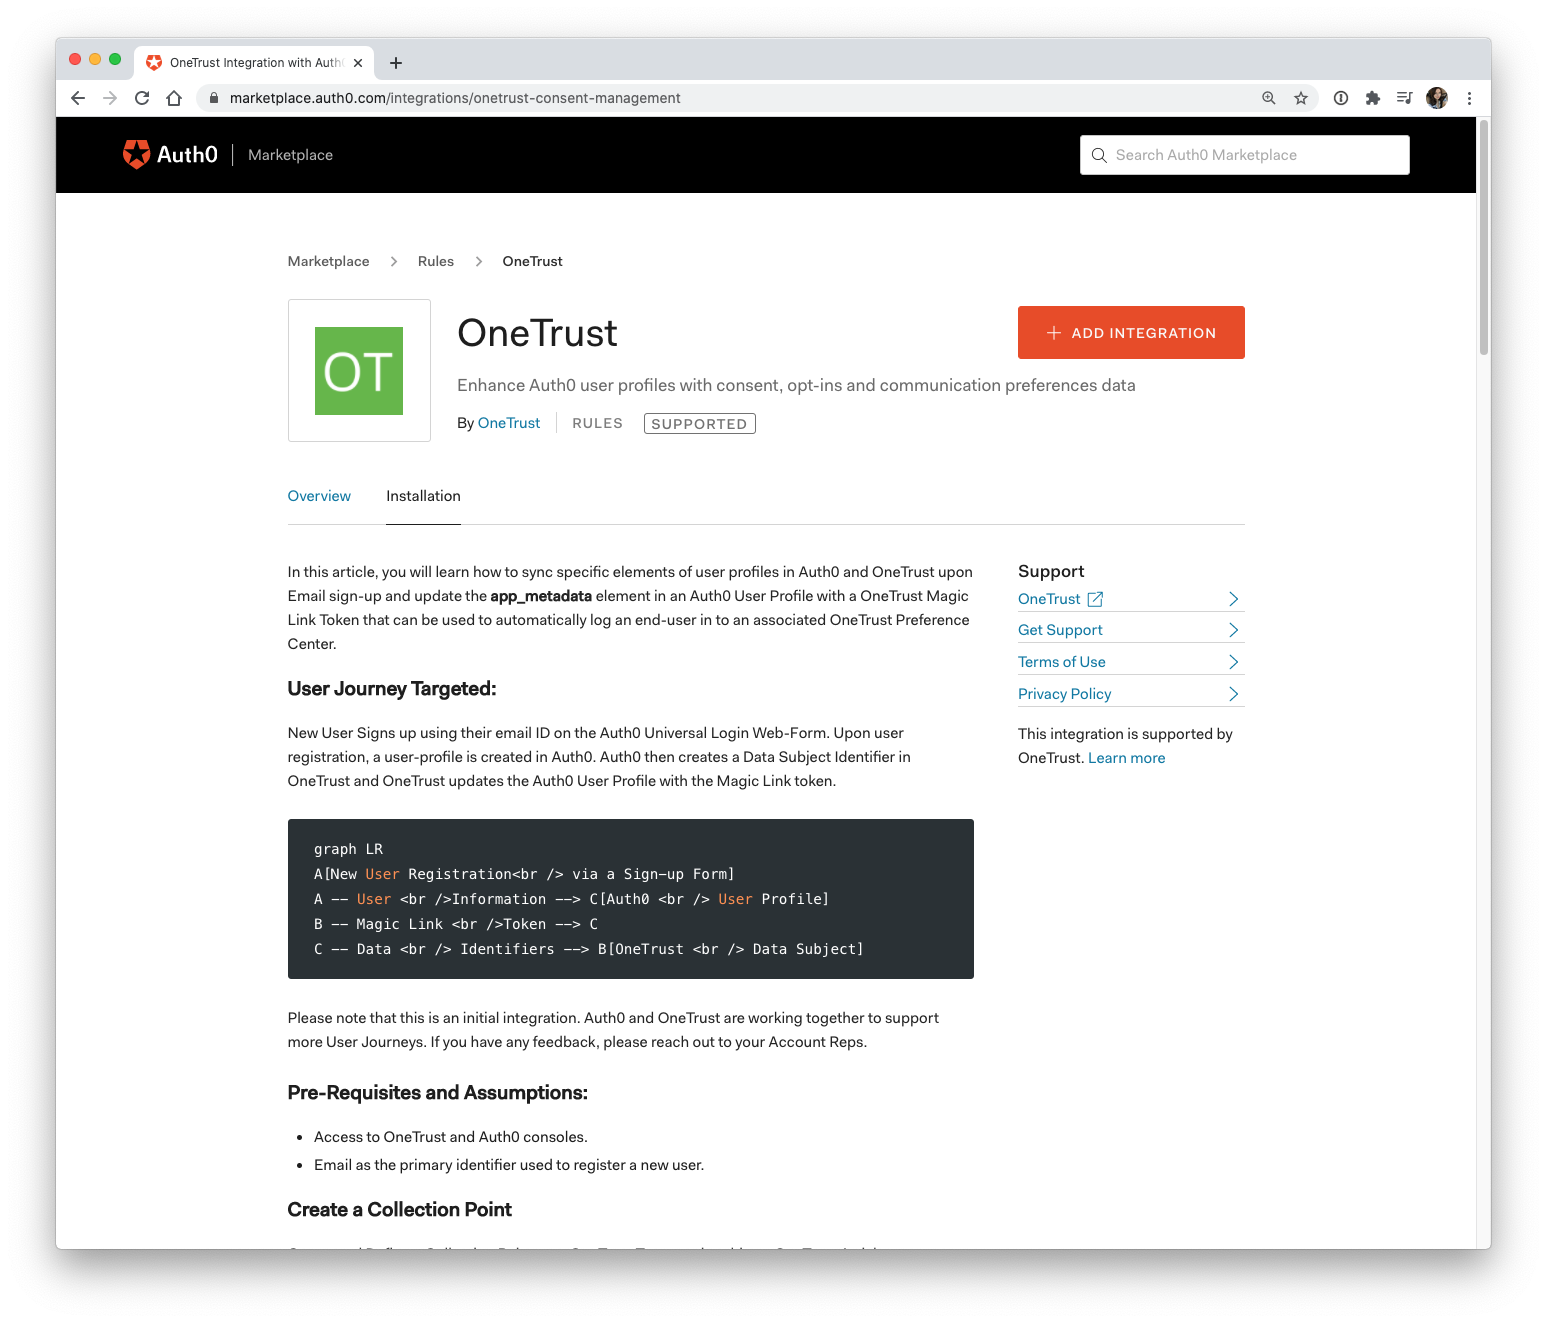 OneTrust Auth0 Marketplace integration